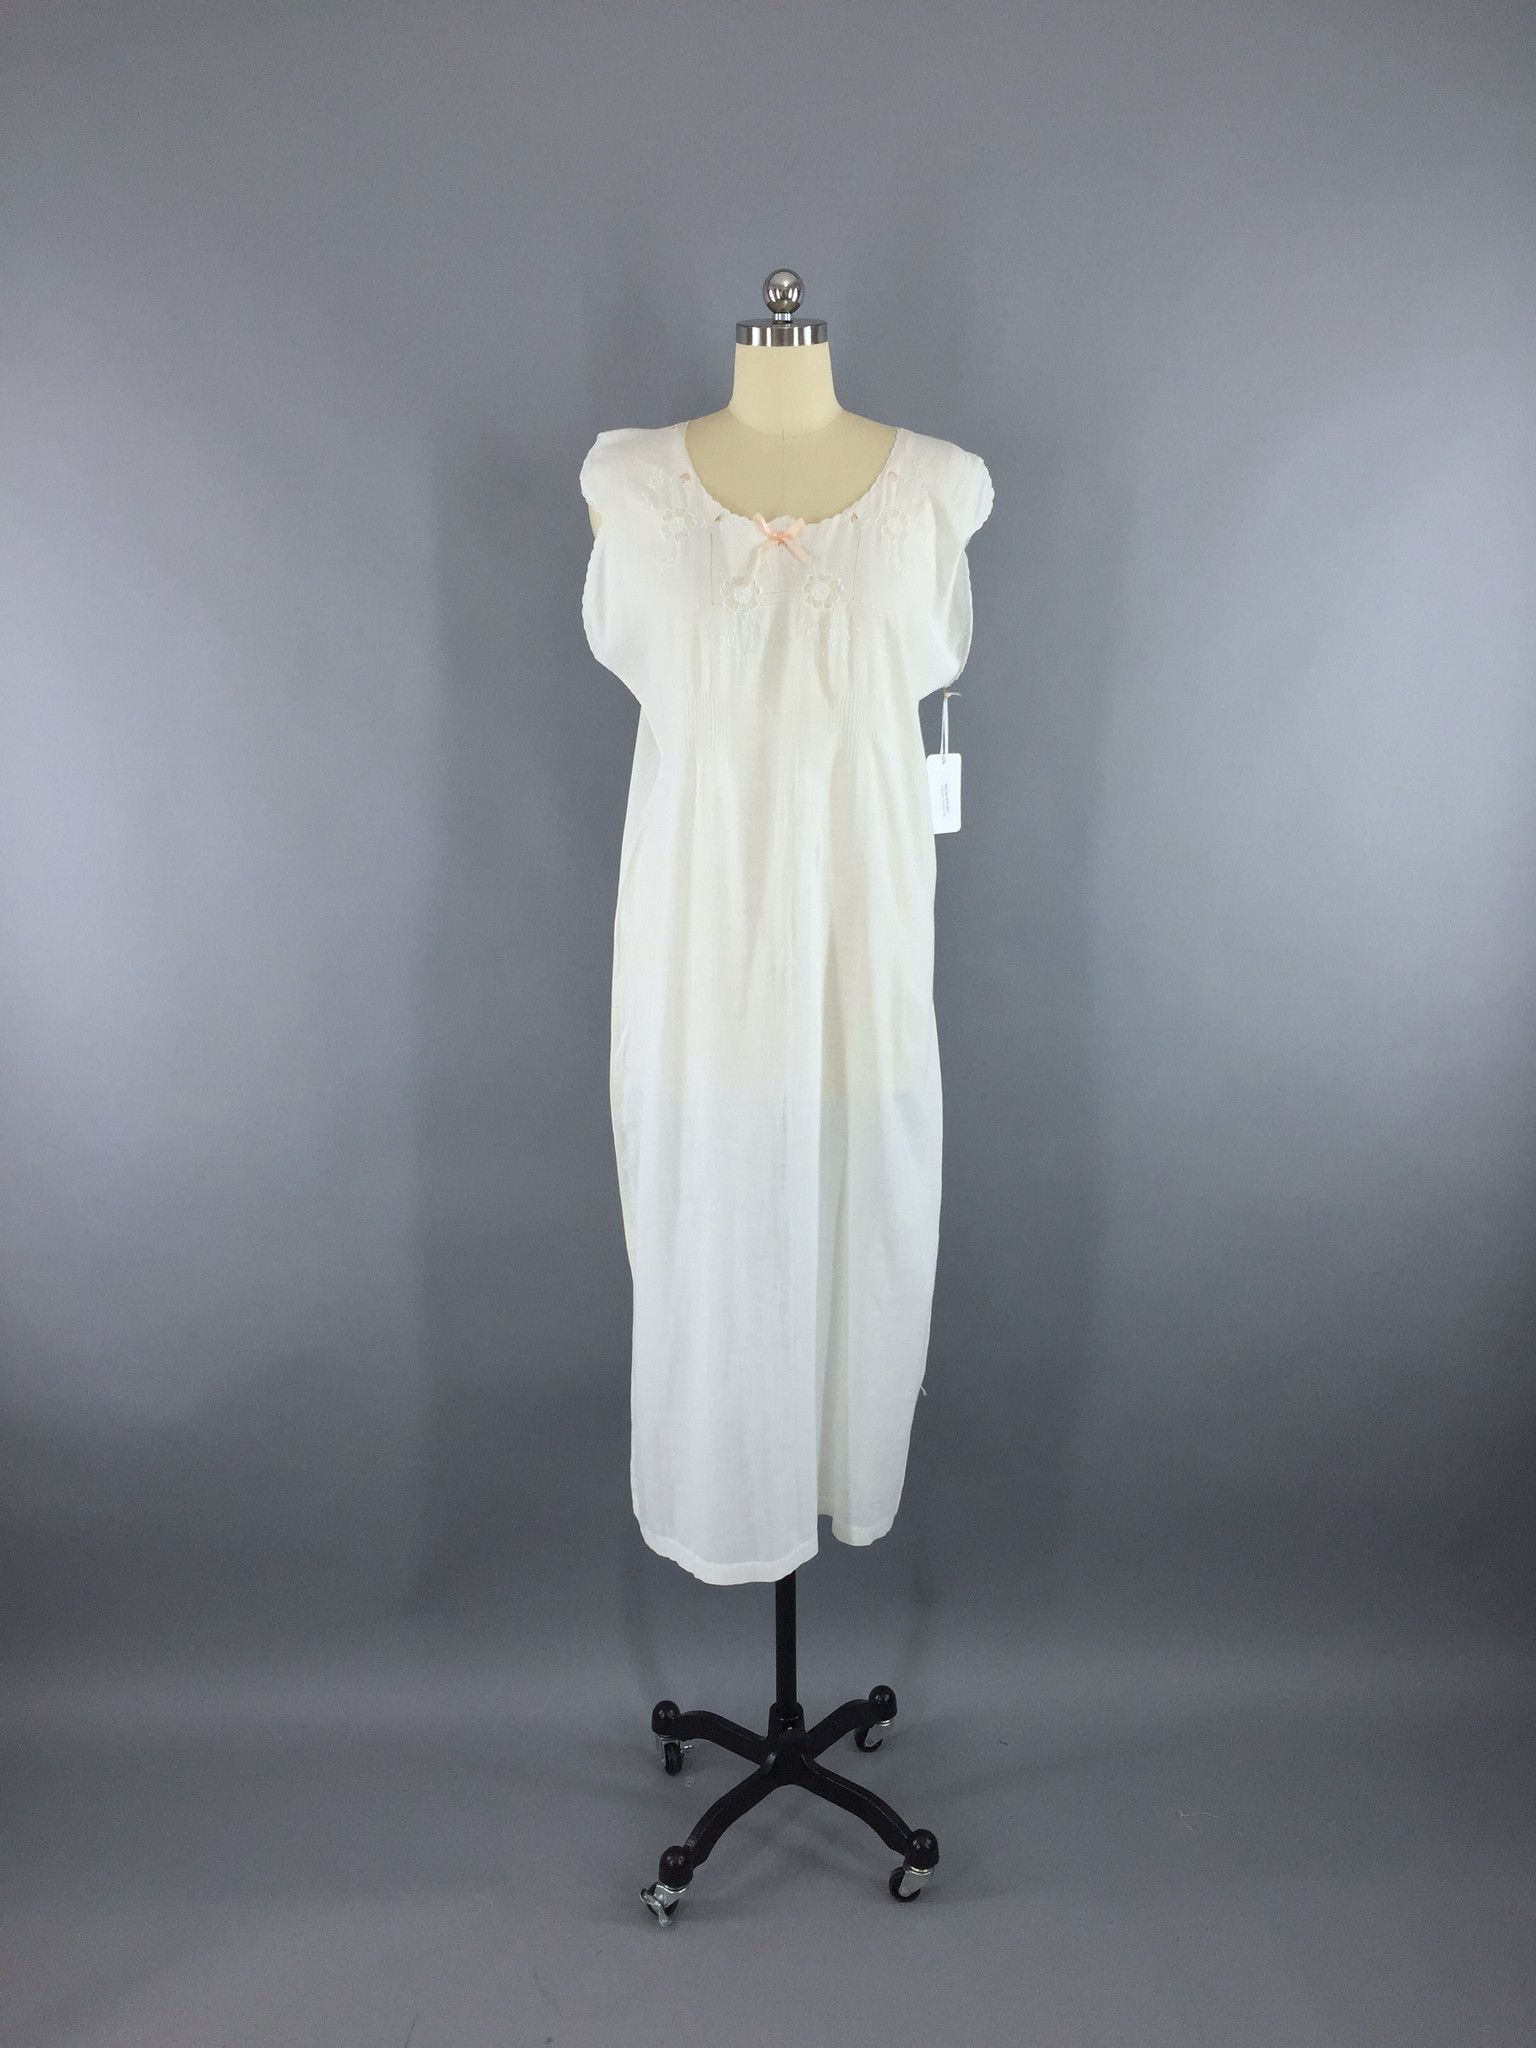 d8d52af21 Vintage 1920s Embroidered White Cotton Nightgown